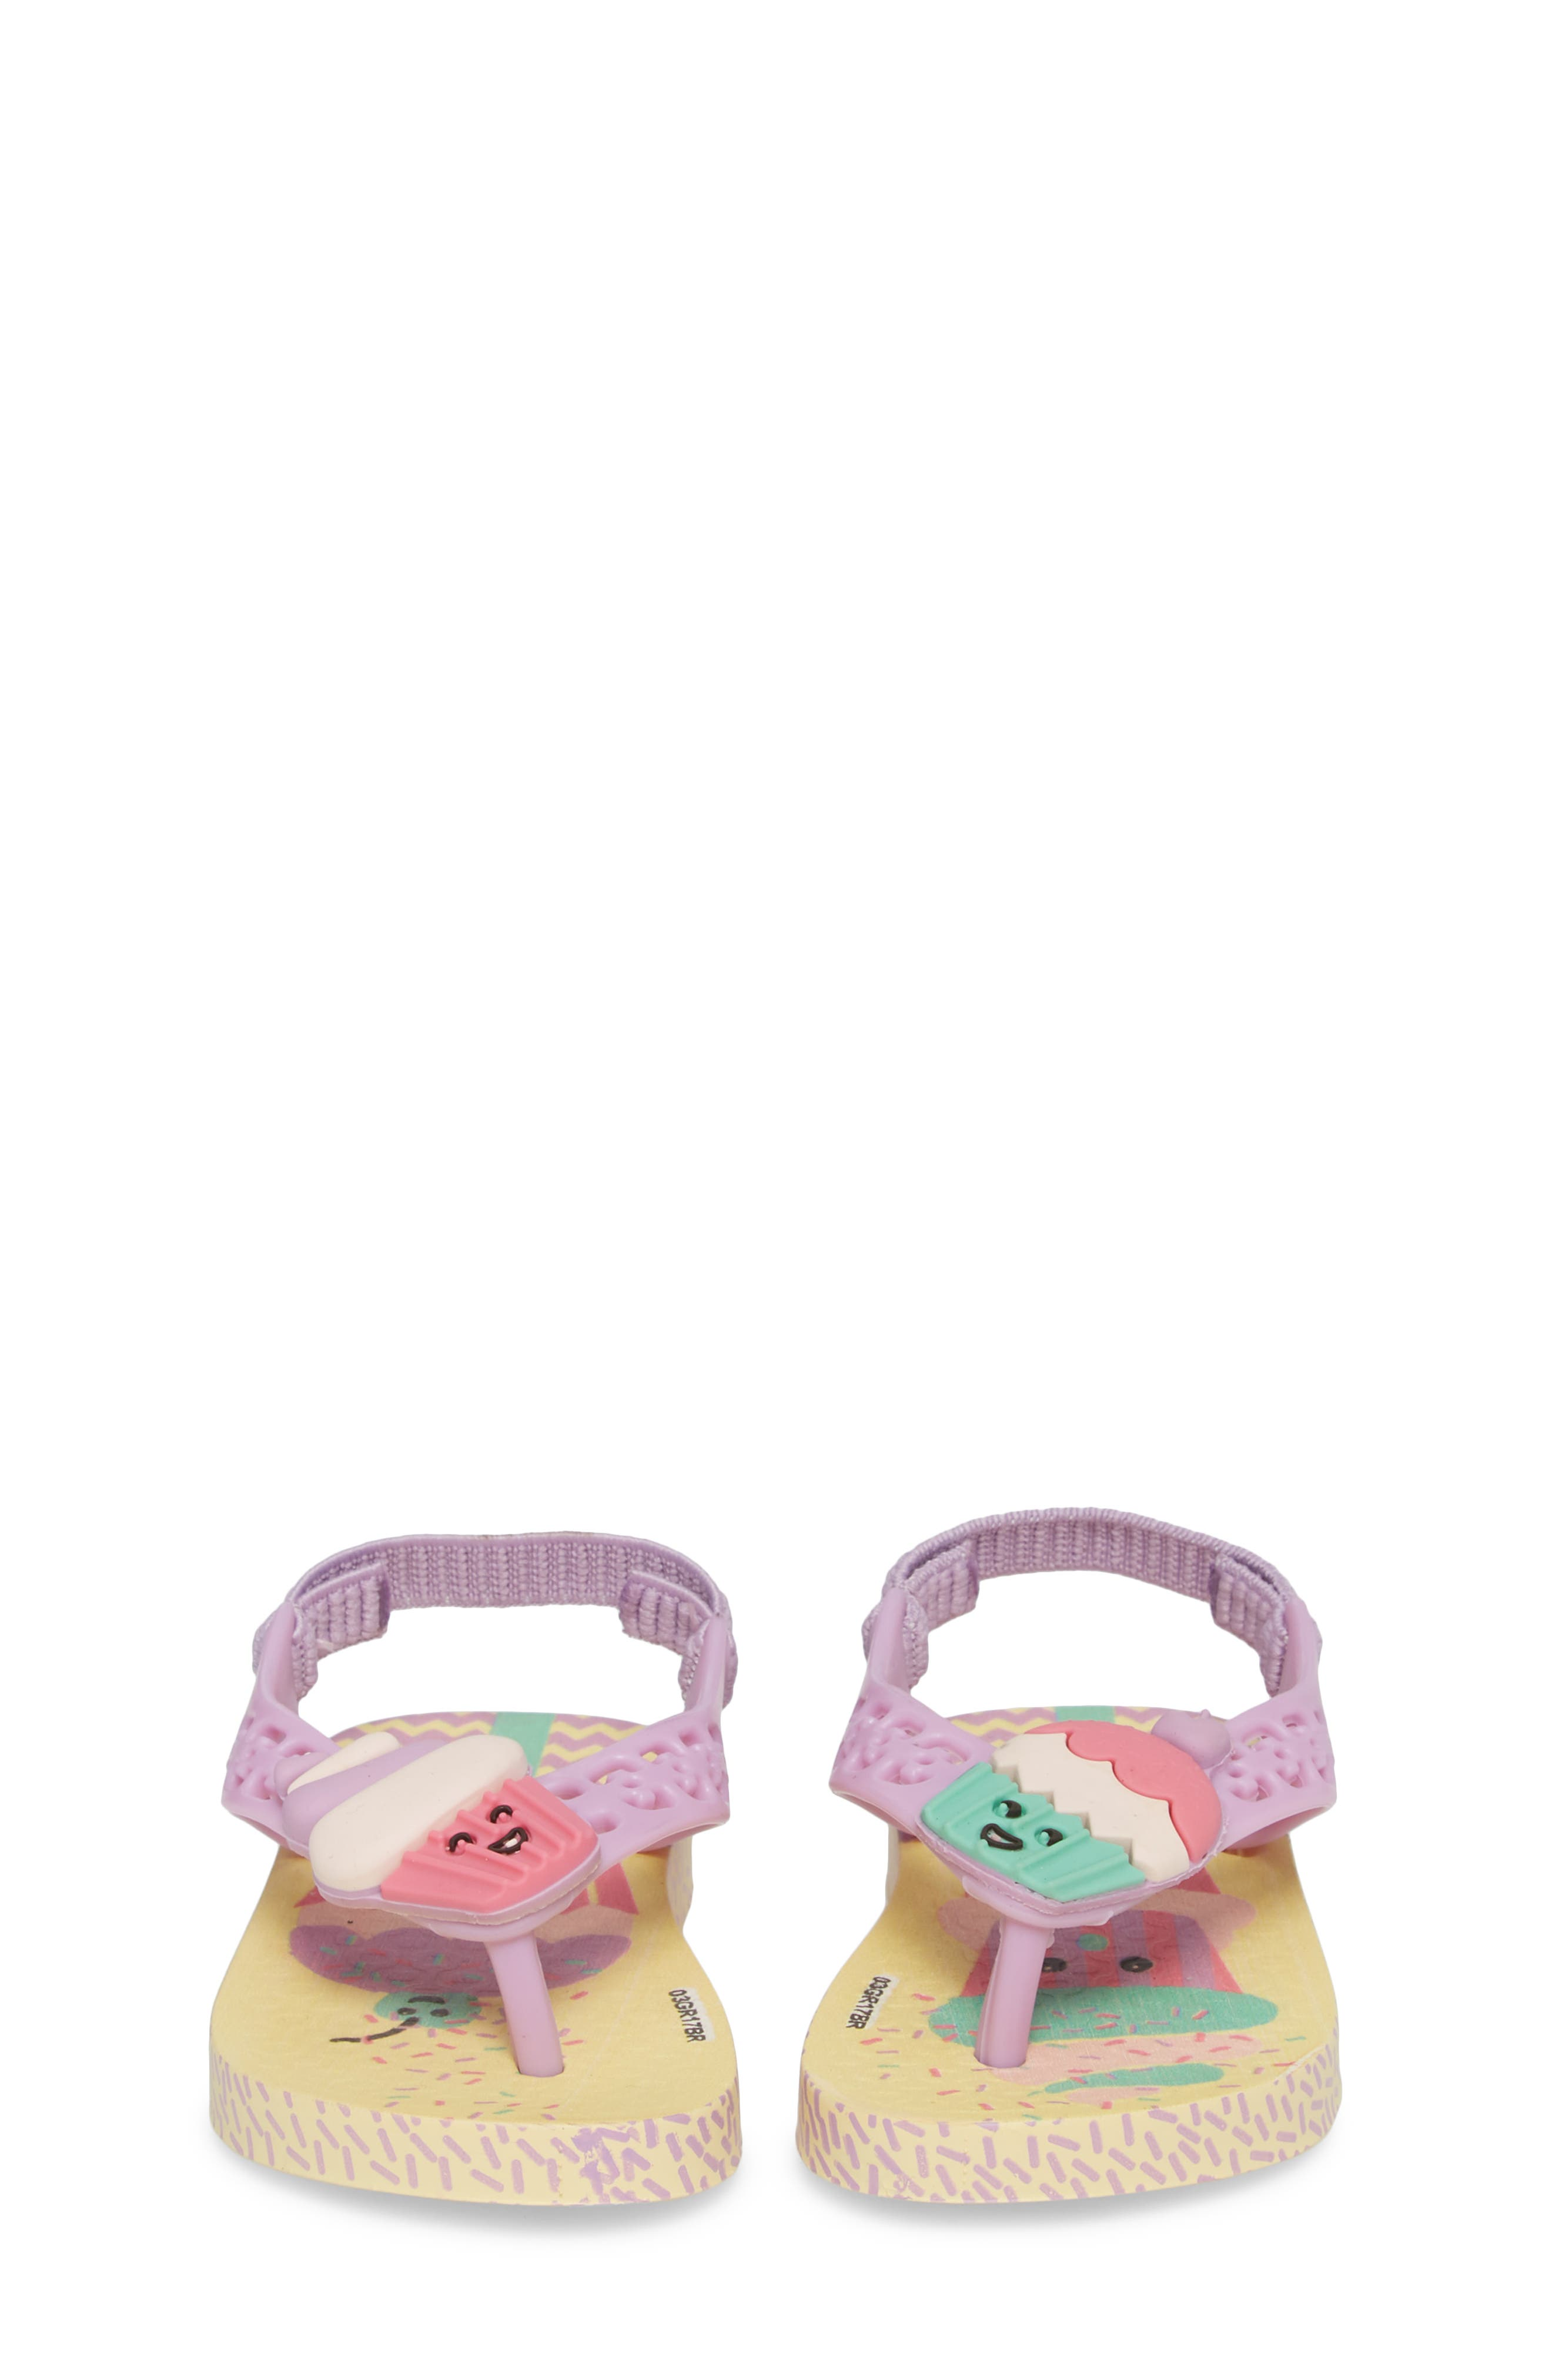 Fun Baby Flip Flop,                             Alternate thumbnail 5, color,                             Yellow/ Lilac